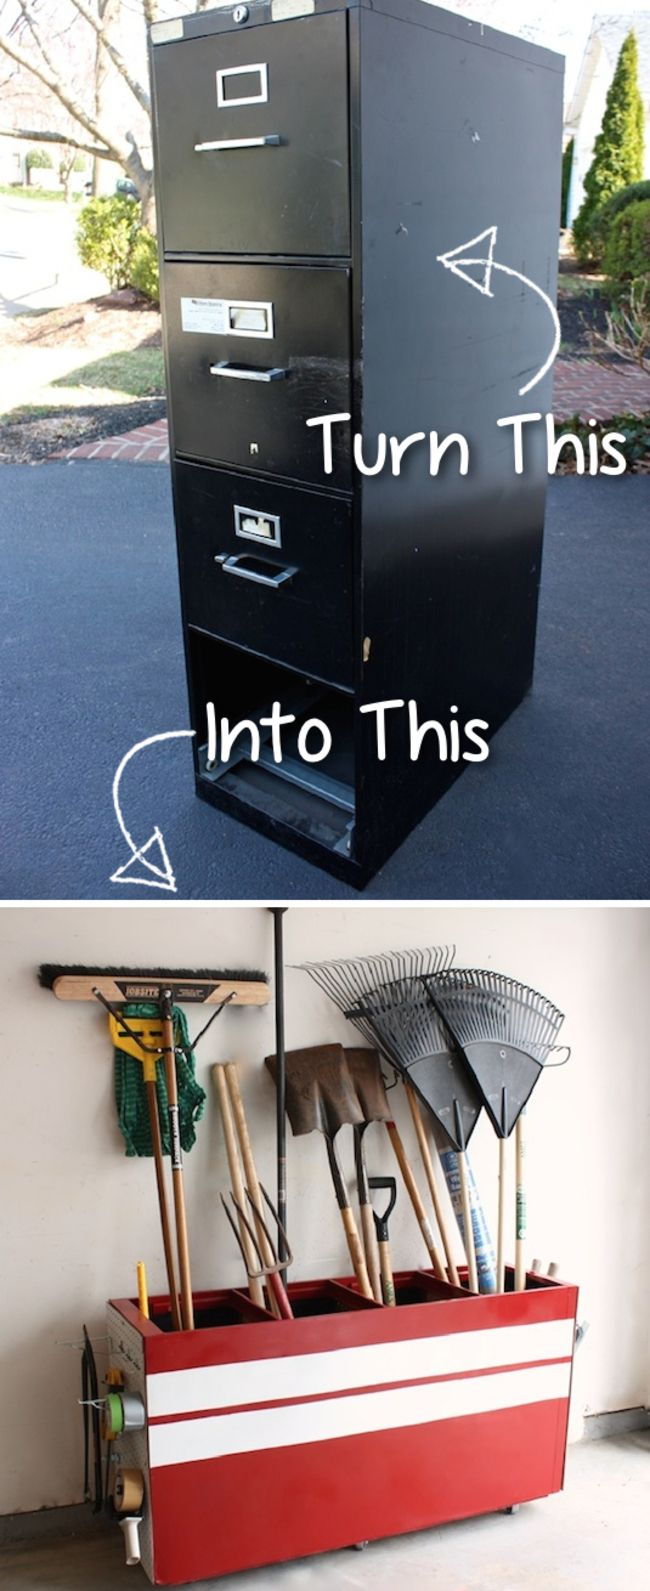 Distractify | 20 DIY Projects To Get Your Garage In Tip-Top Shape This Spring